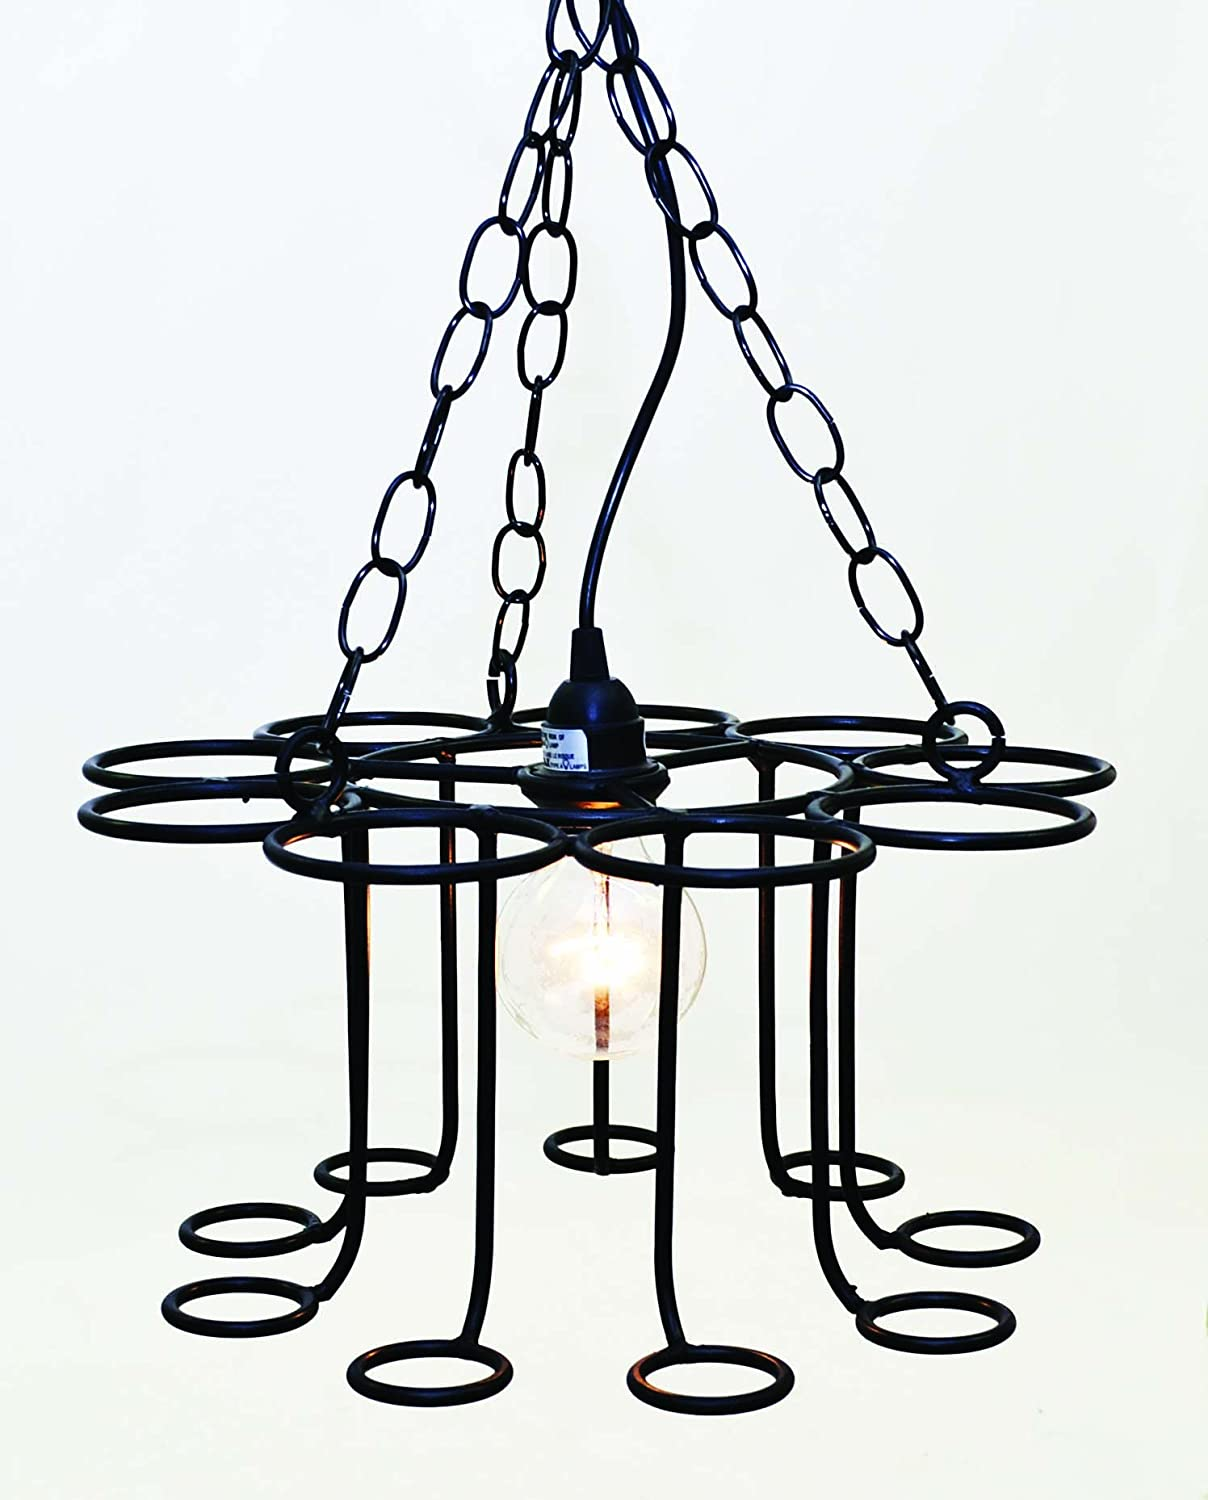 Socket Set Chandelier has 15 Feet of Cord and Plugs into any Standard Outlet